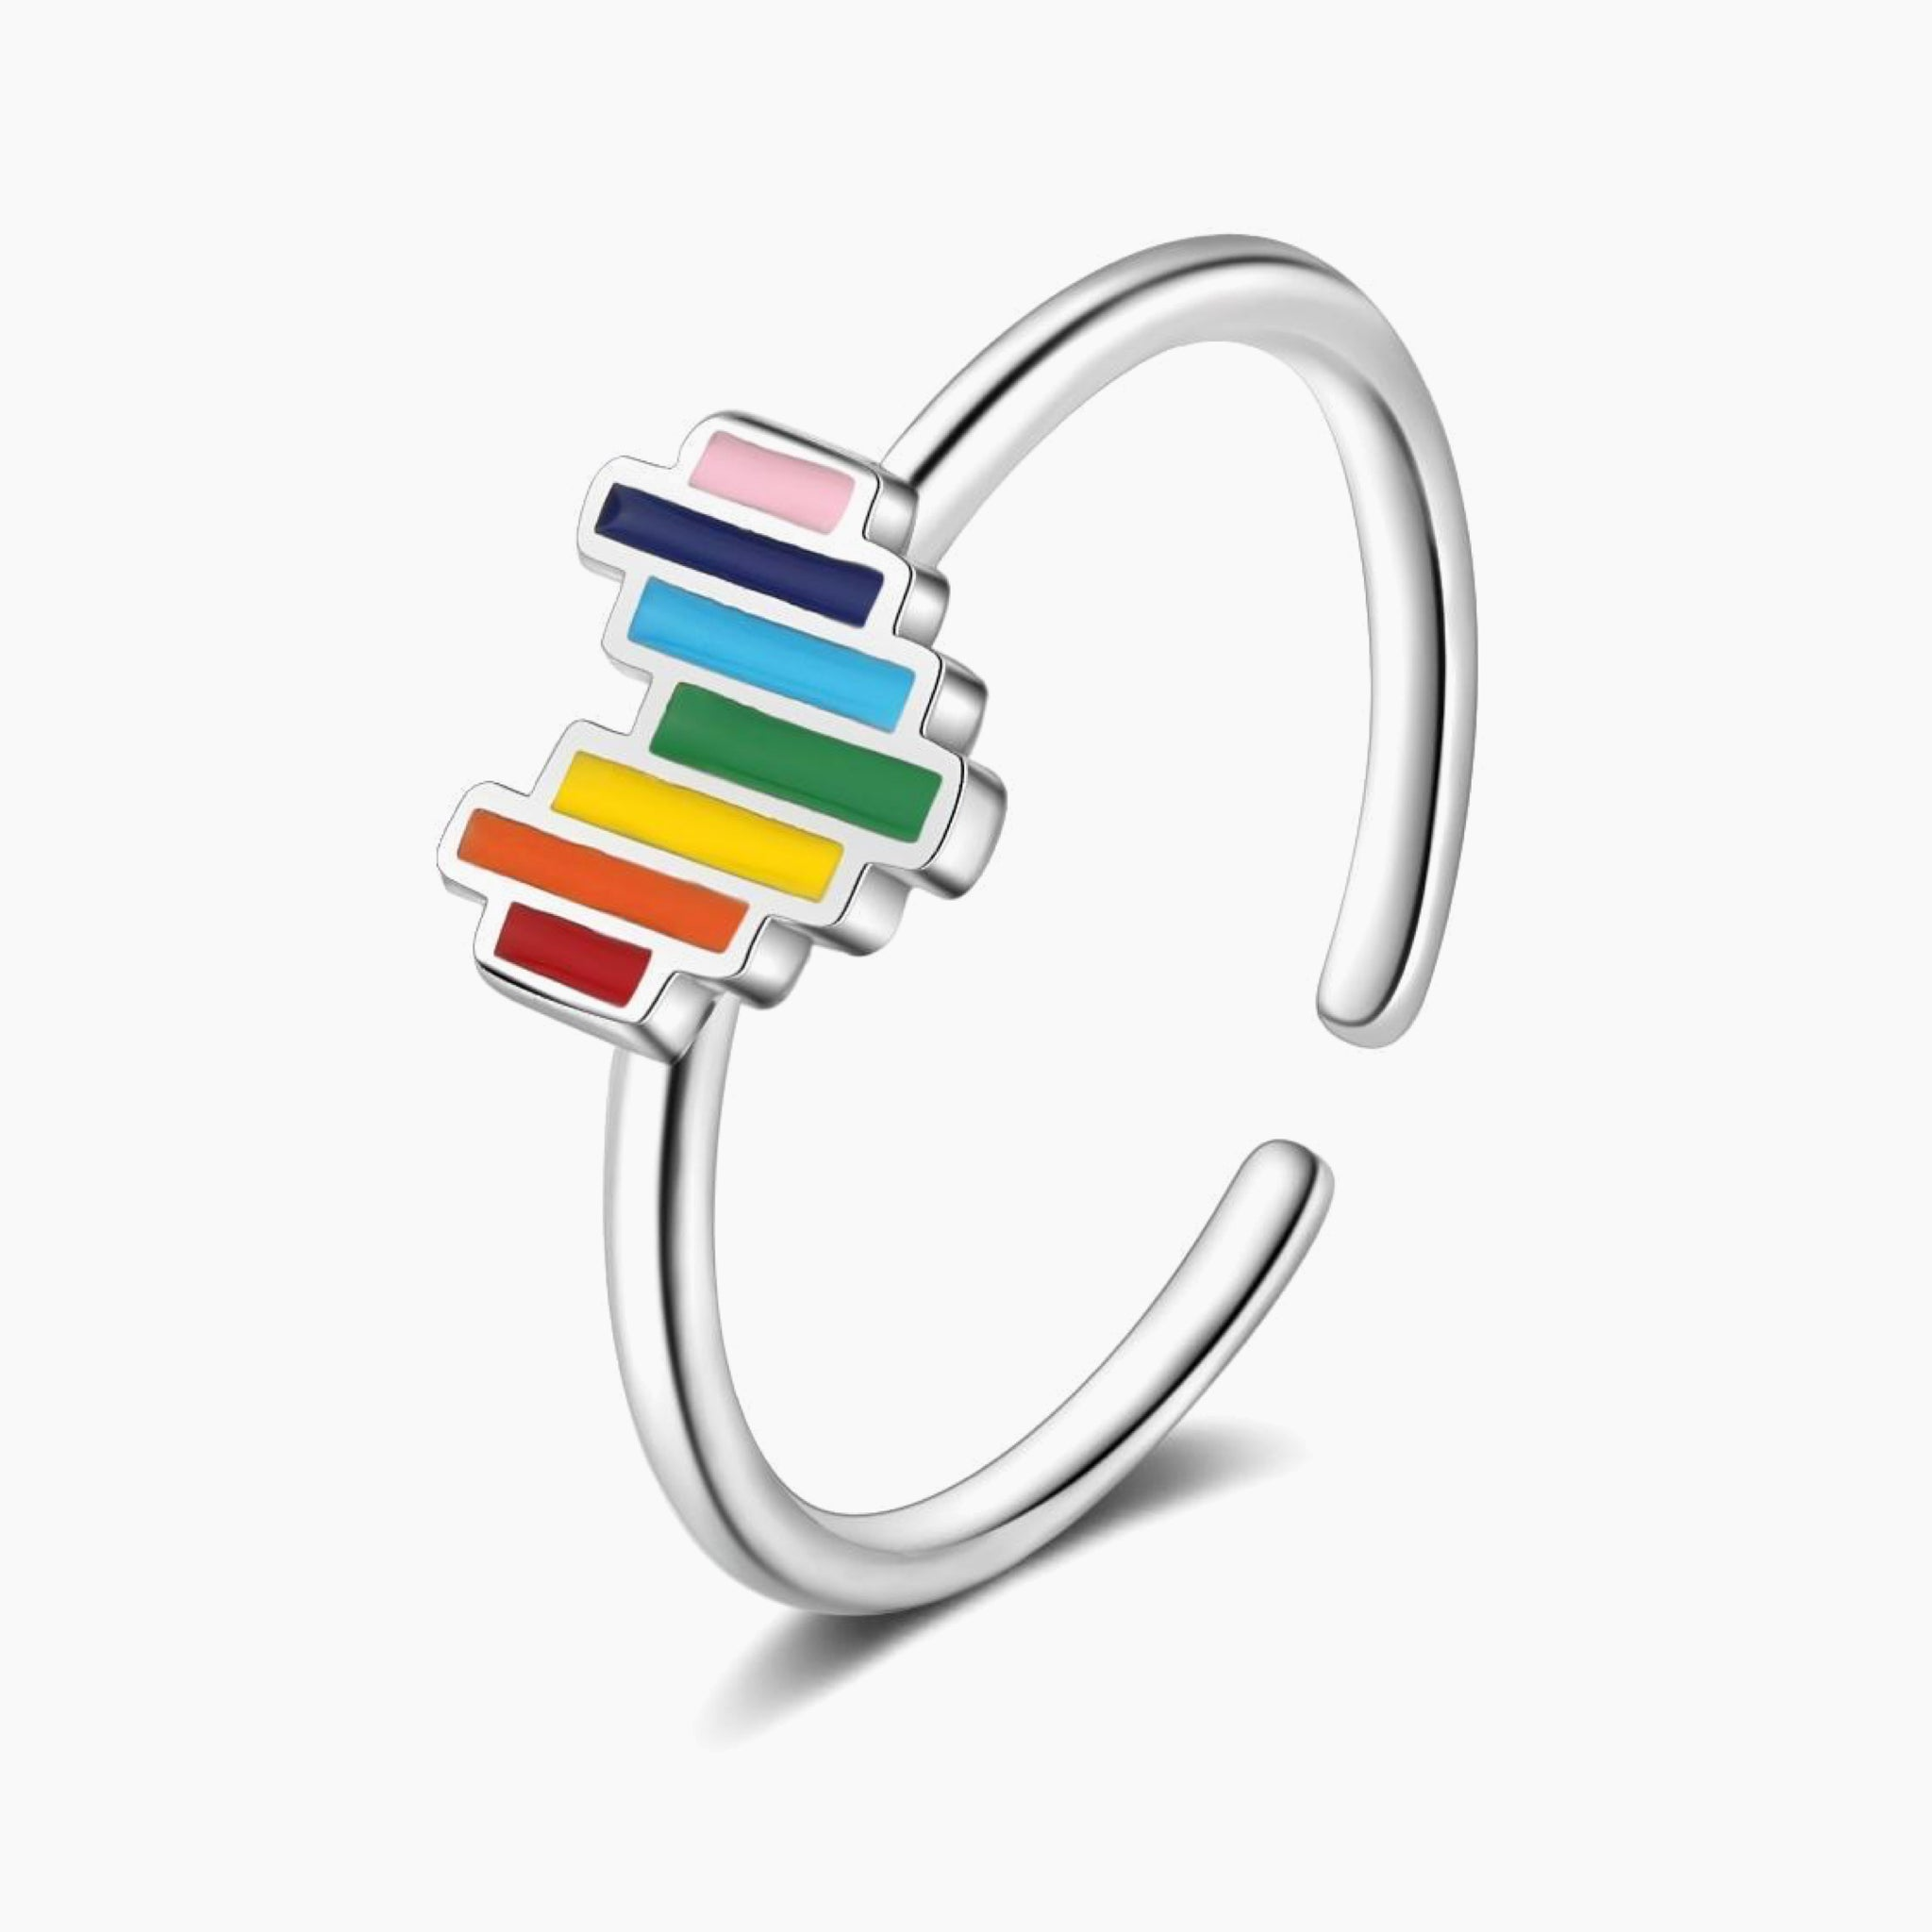 Lovely Rainbow Heart Open Ring 925 Sterling Silver Open Size Finger Rings Fashion Jewelry Trend